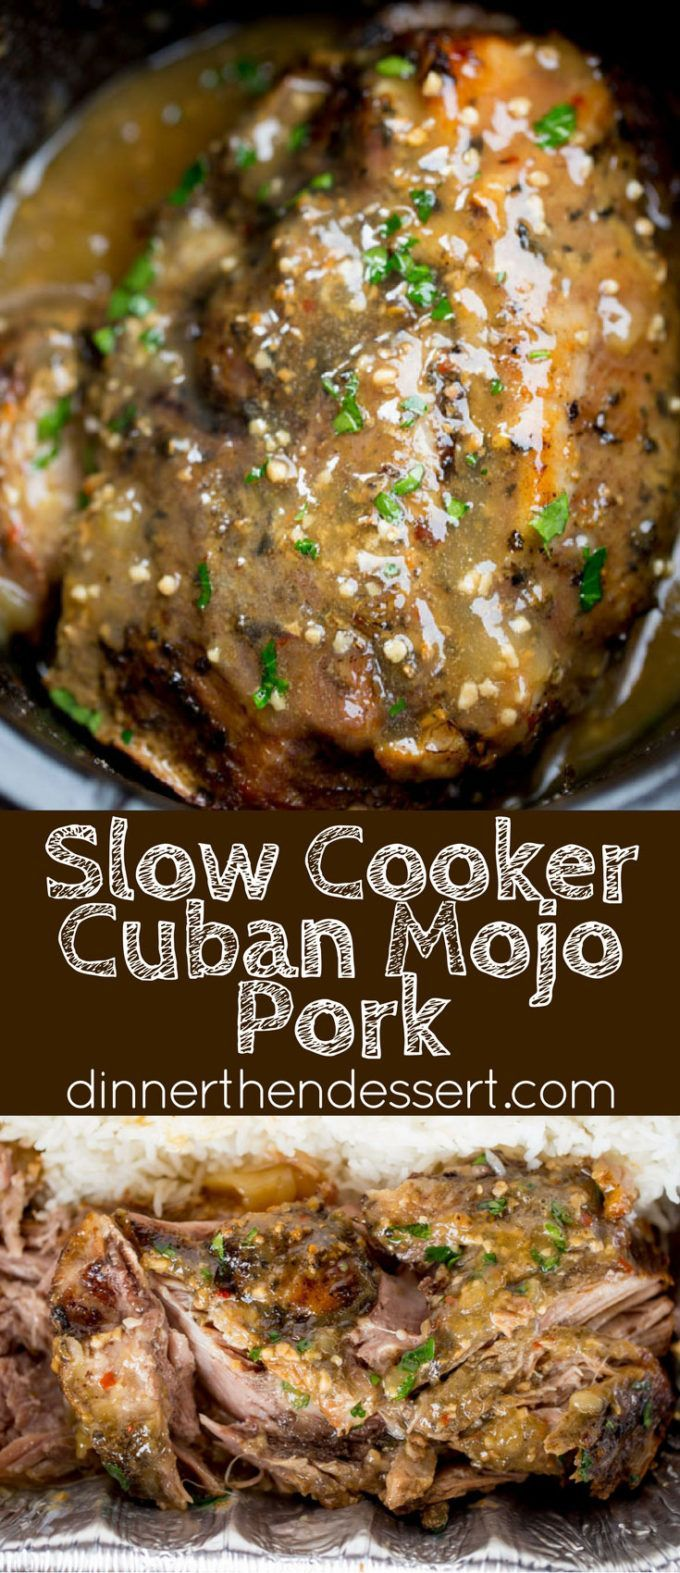 Slow Cooker Cuban Mojo Pork made with citrus, garlic, oregano and cumin takes almost no prep time and makes a fantastic, flavorful meal your family will love any night of the week!